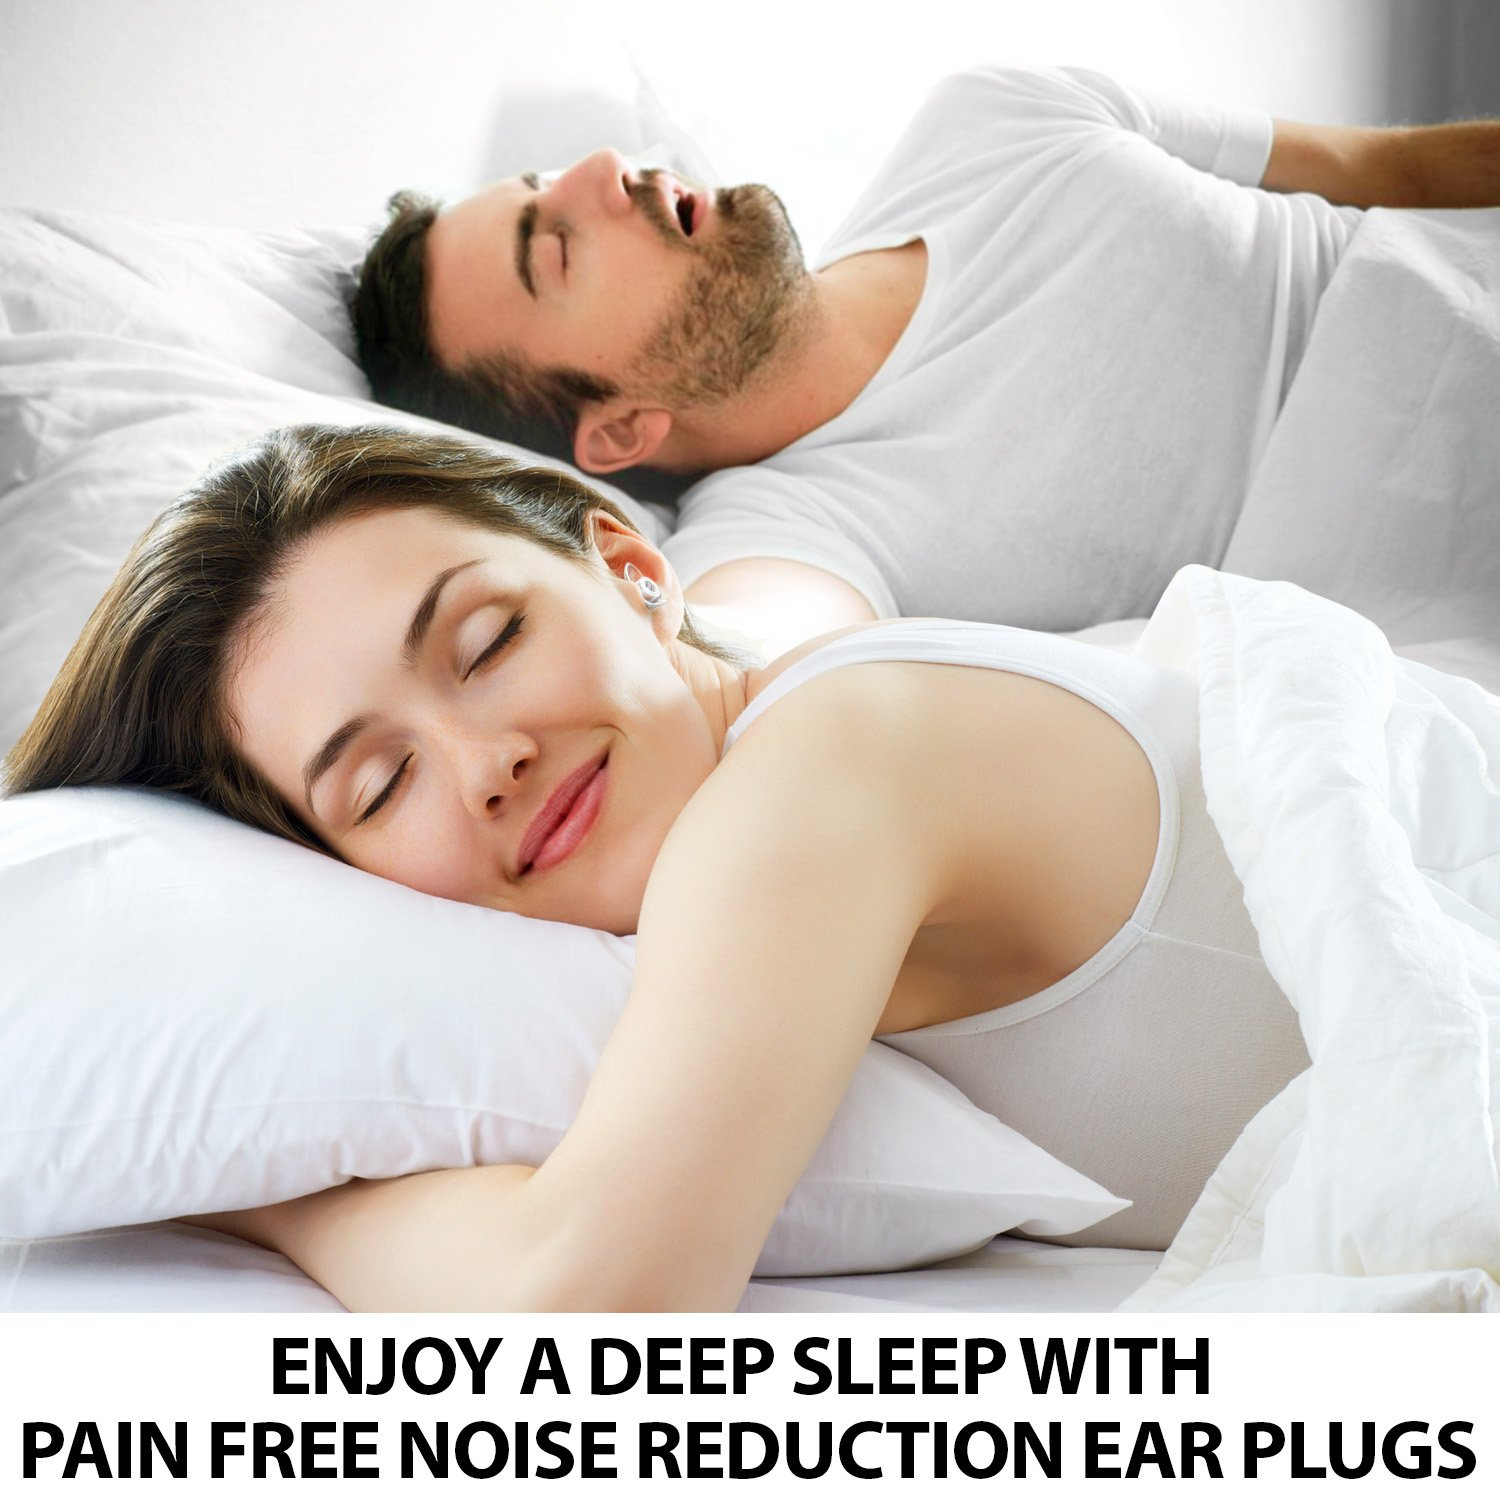 Sound Reducing Professional Ear Plugs - Most Effective Noise Reduction Ear Plugs for Concerts, Work, Sleep and Motorcycle Ear Protection - Soft and Comfortable Reusable Ear Plugs - Earplugs Sleep by Inbound Vibes (Image #5)